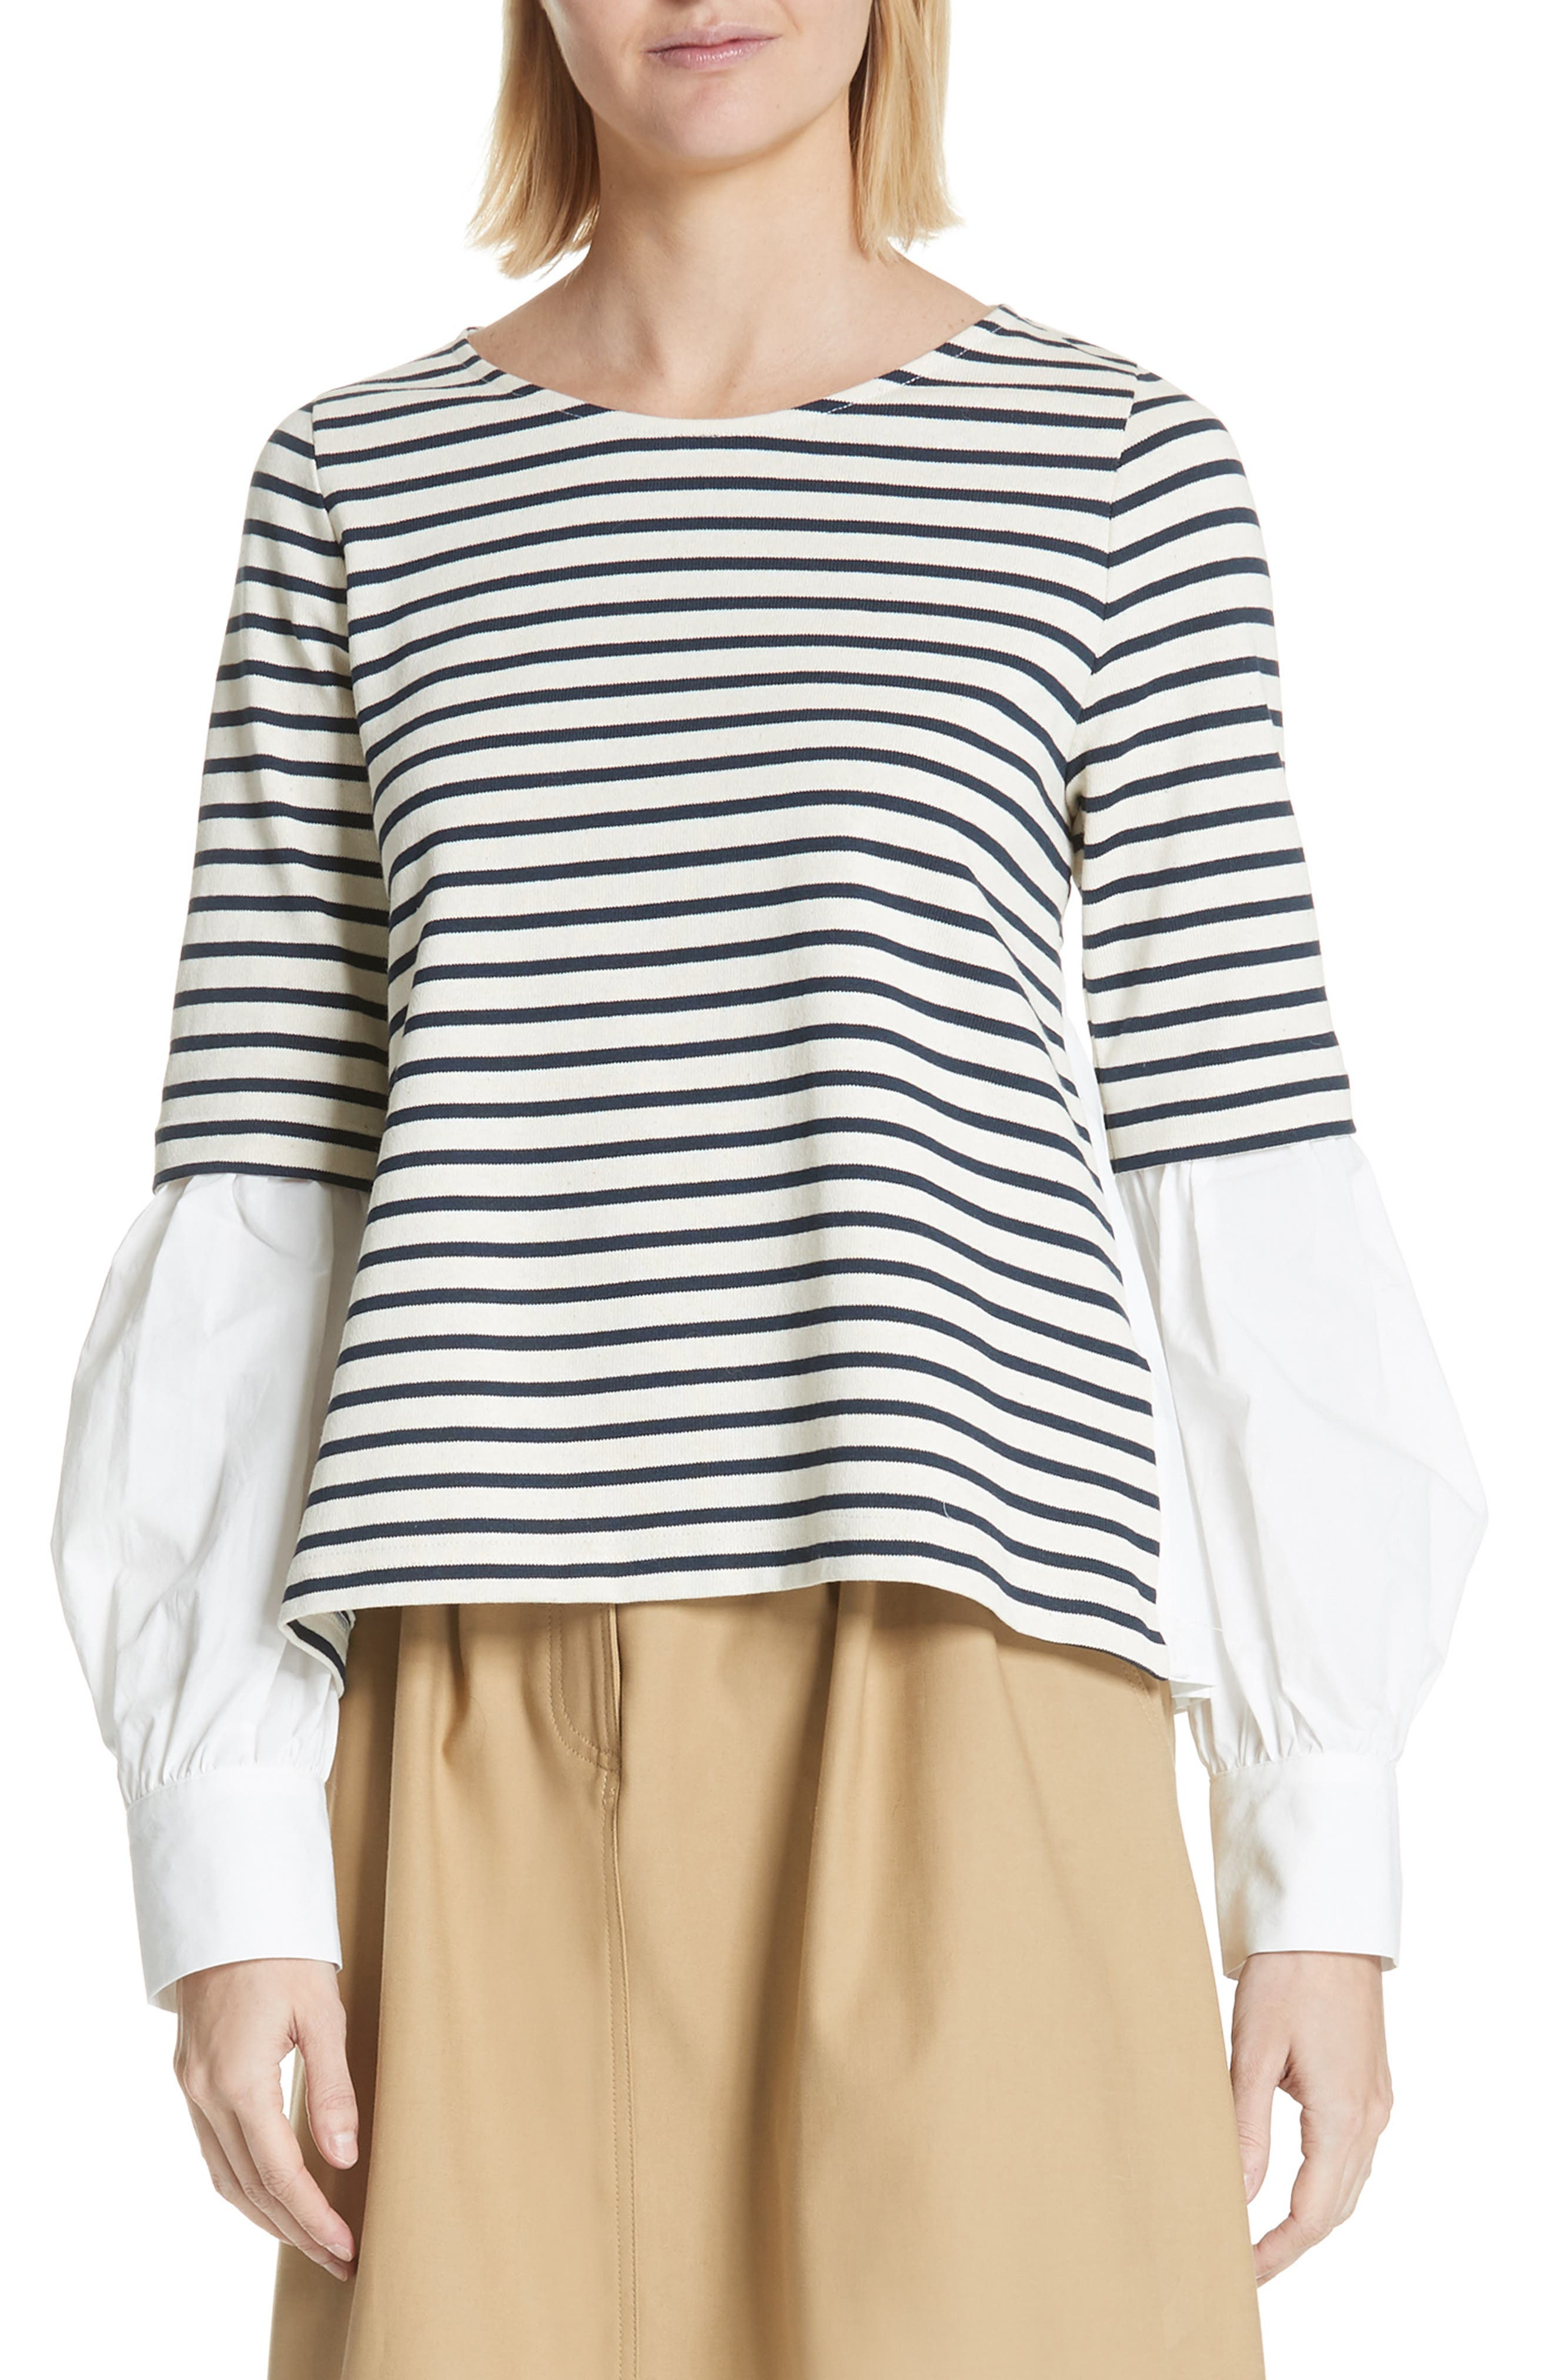 Levine Mixed Media Top,                         Main,                         color, CREAM/ NAVY STRIPE